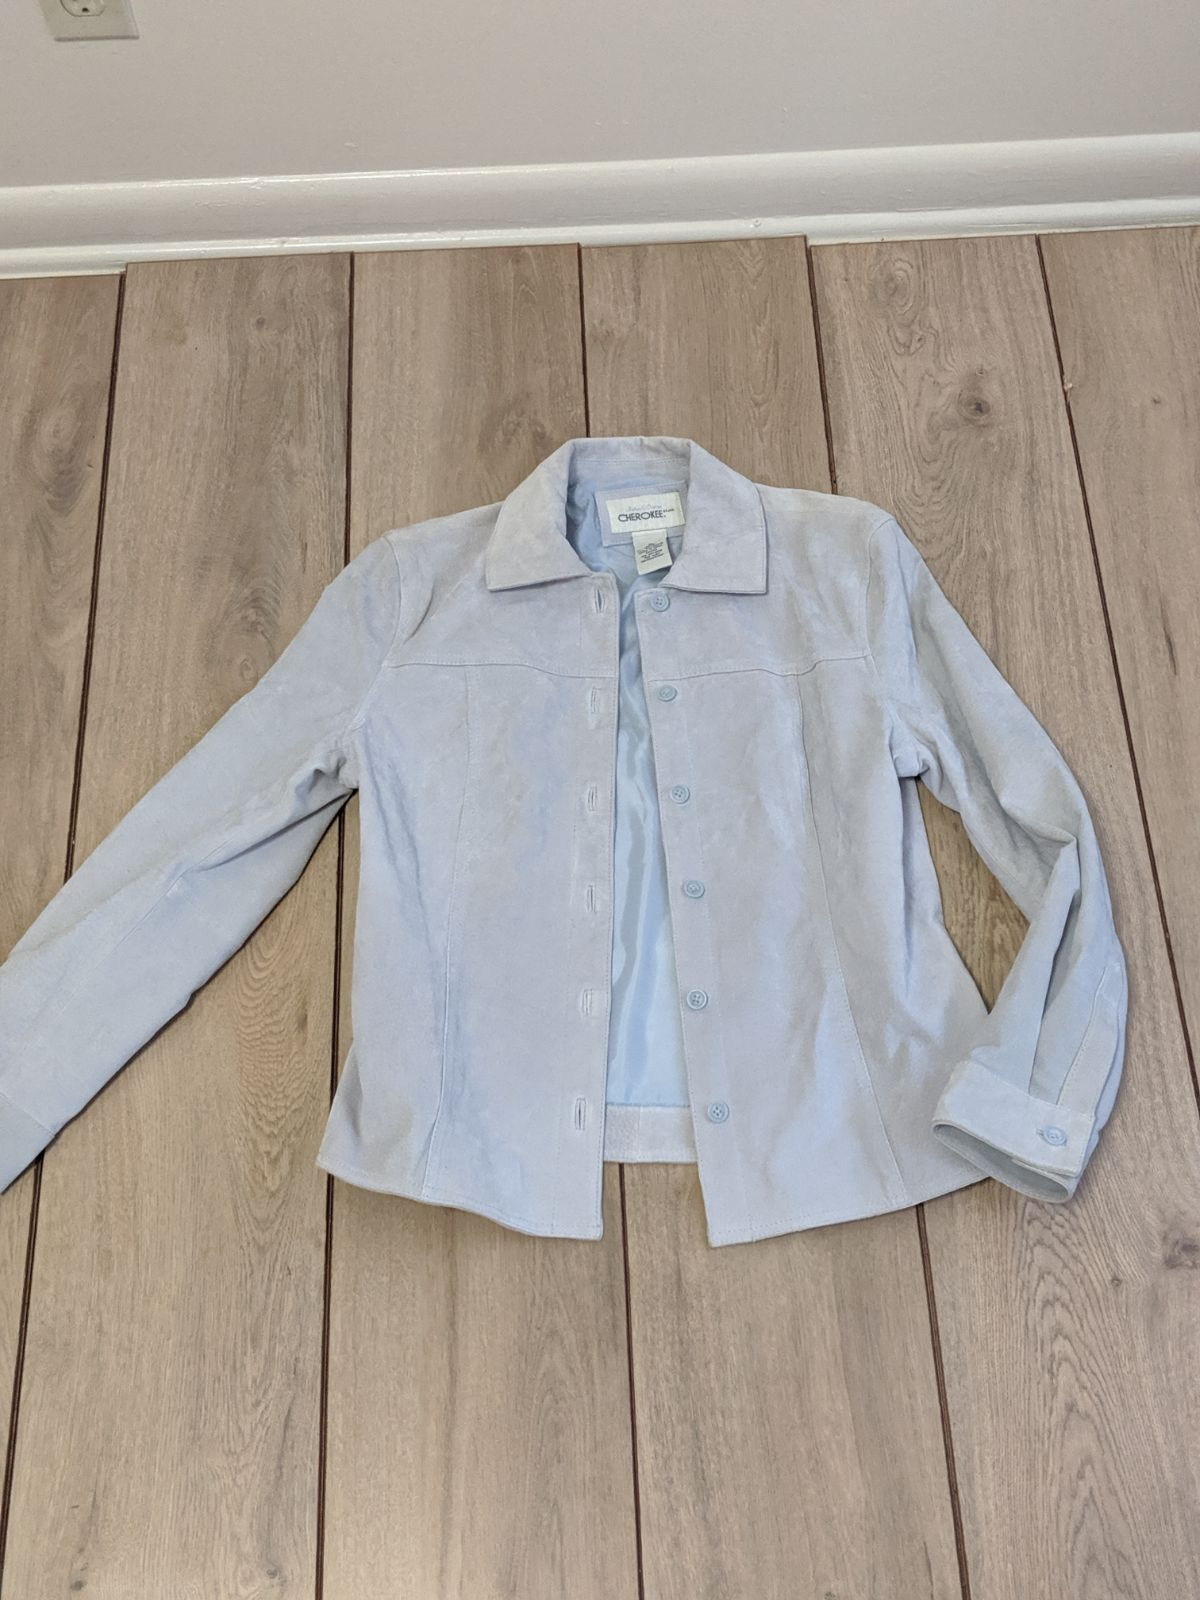 Suede Leather Jacket- New without tags